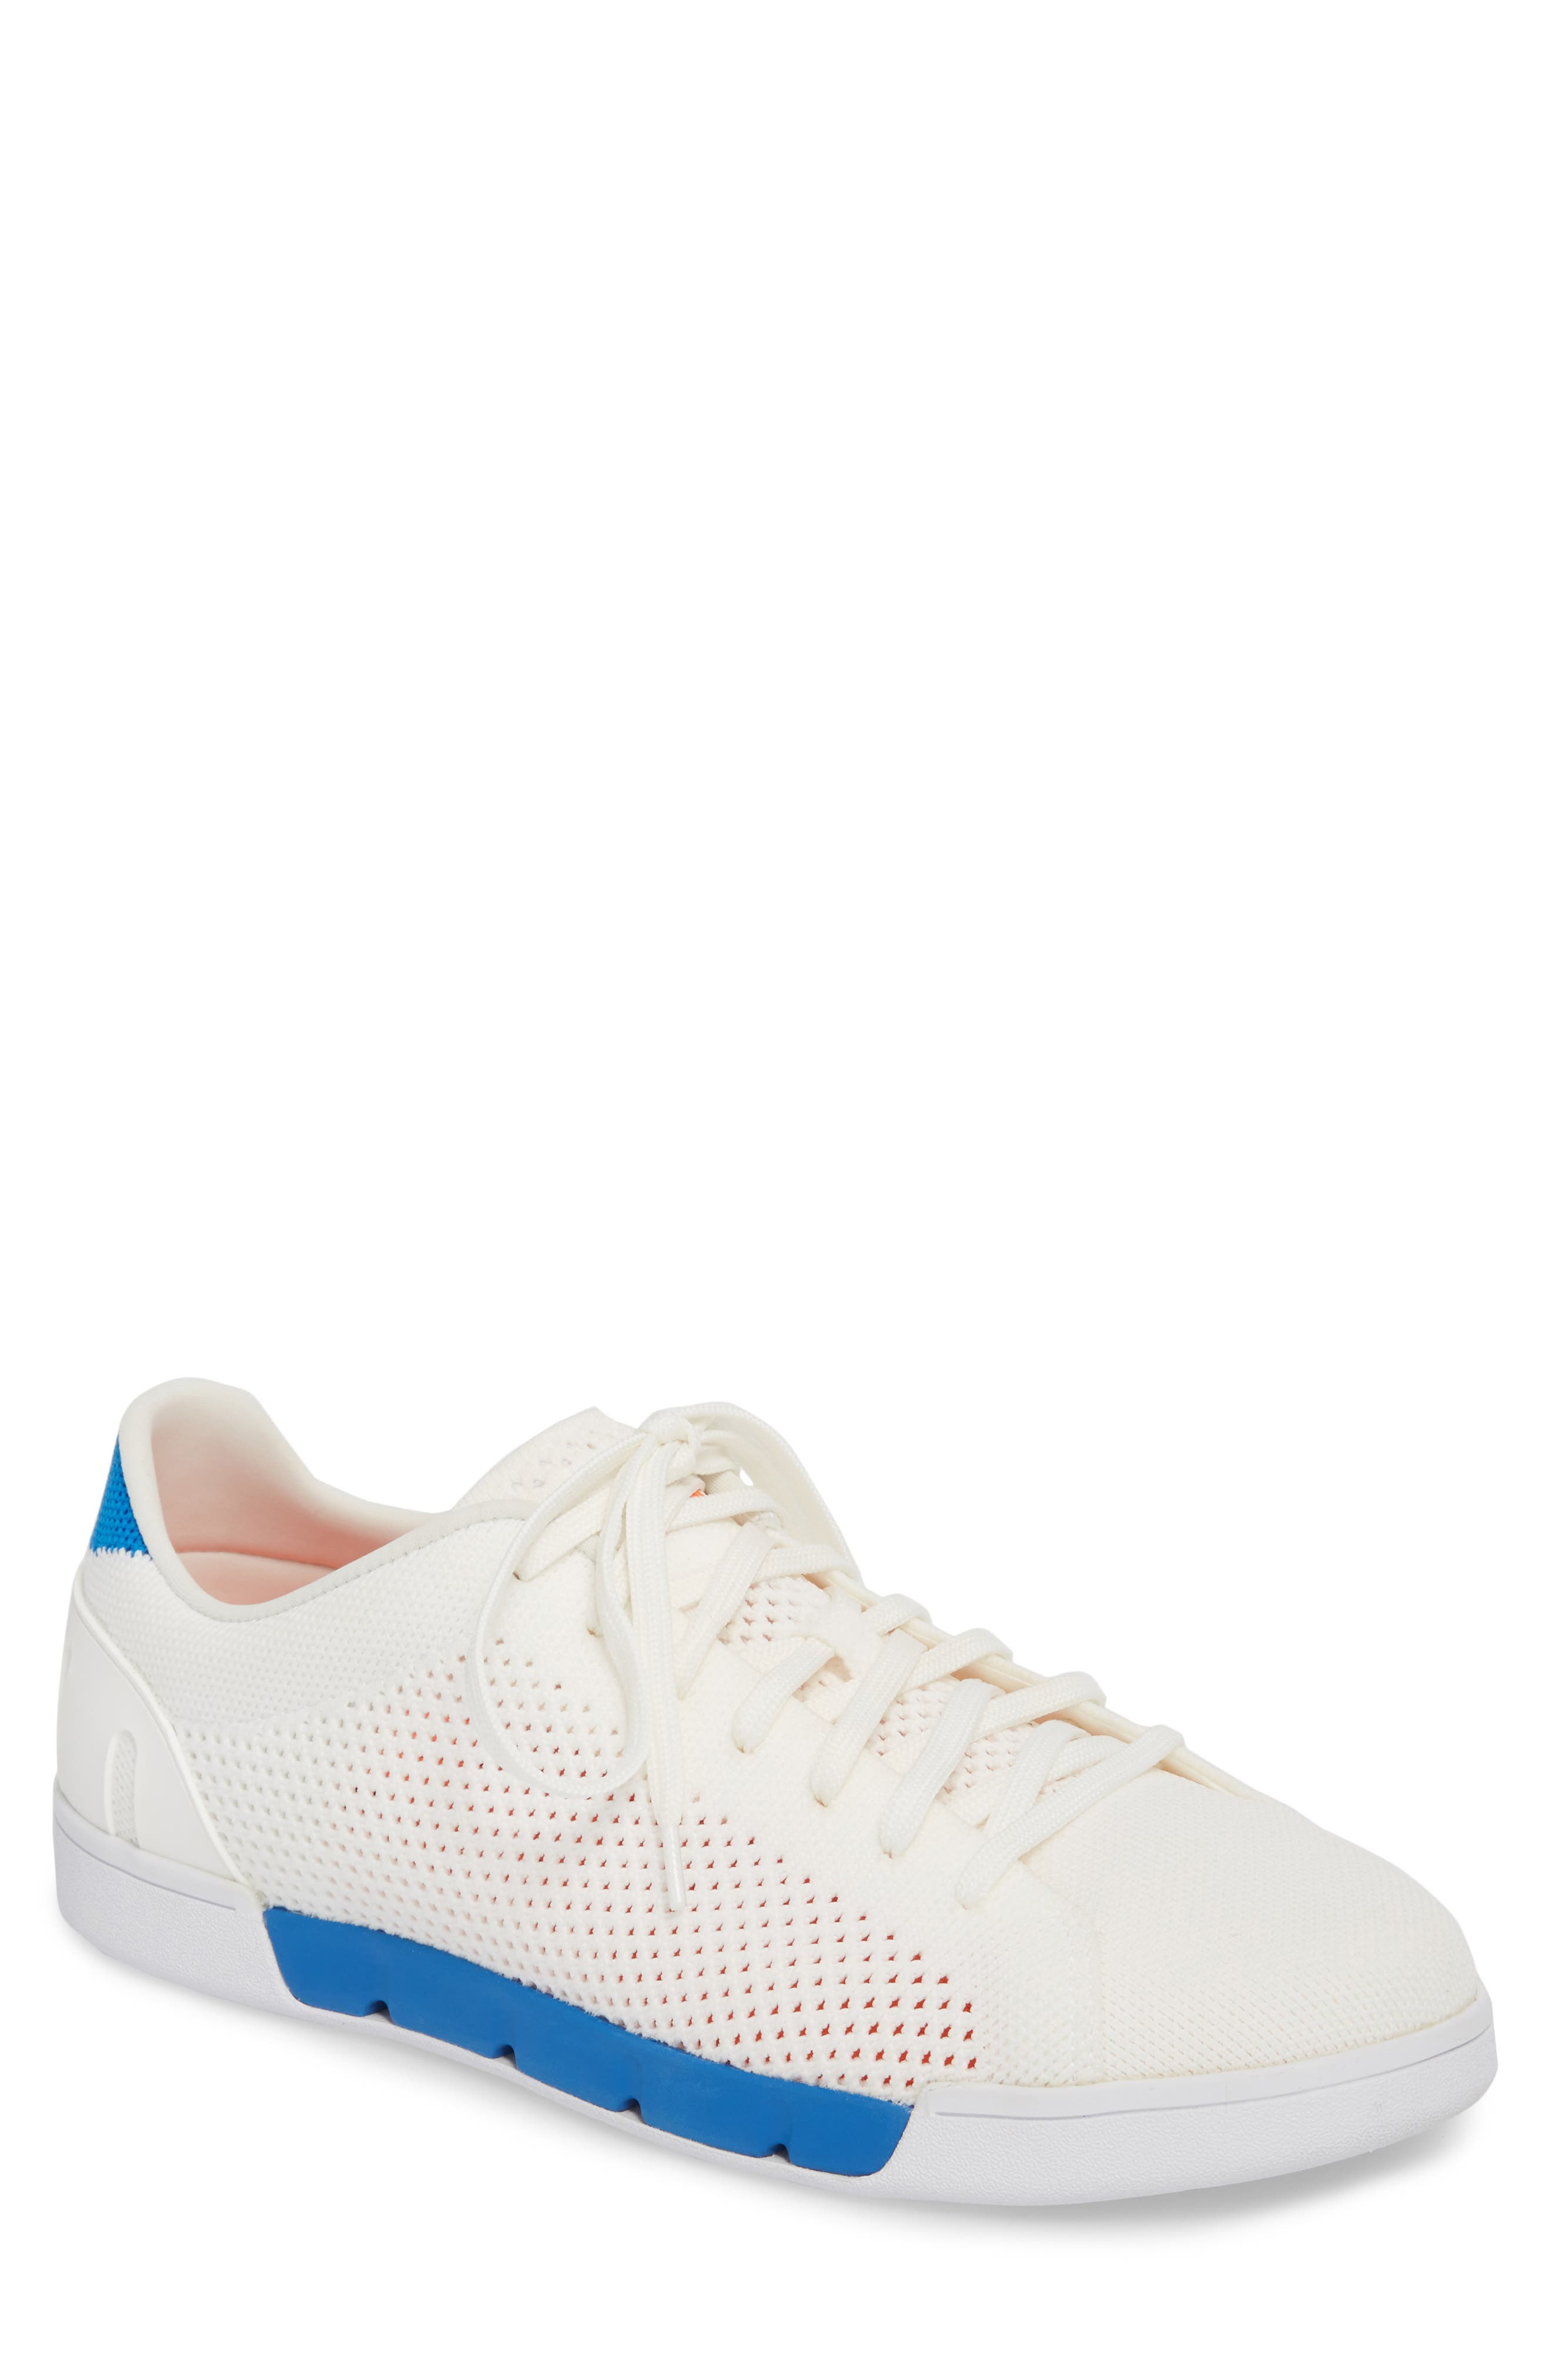 SWIMS Breeze Tennis Washable Knit Sneaker in White/ Blitz Blue Fabric